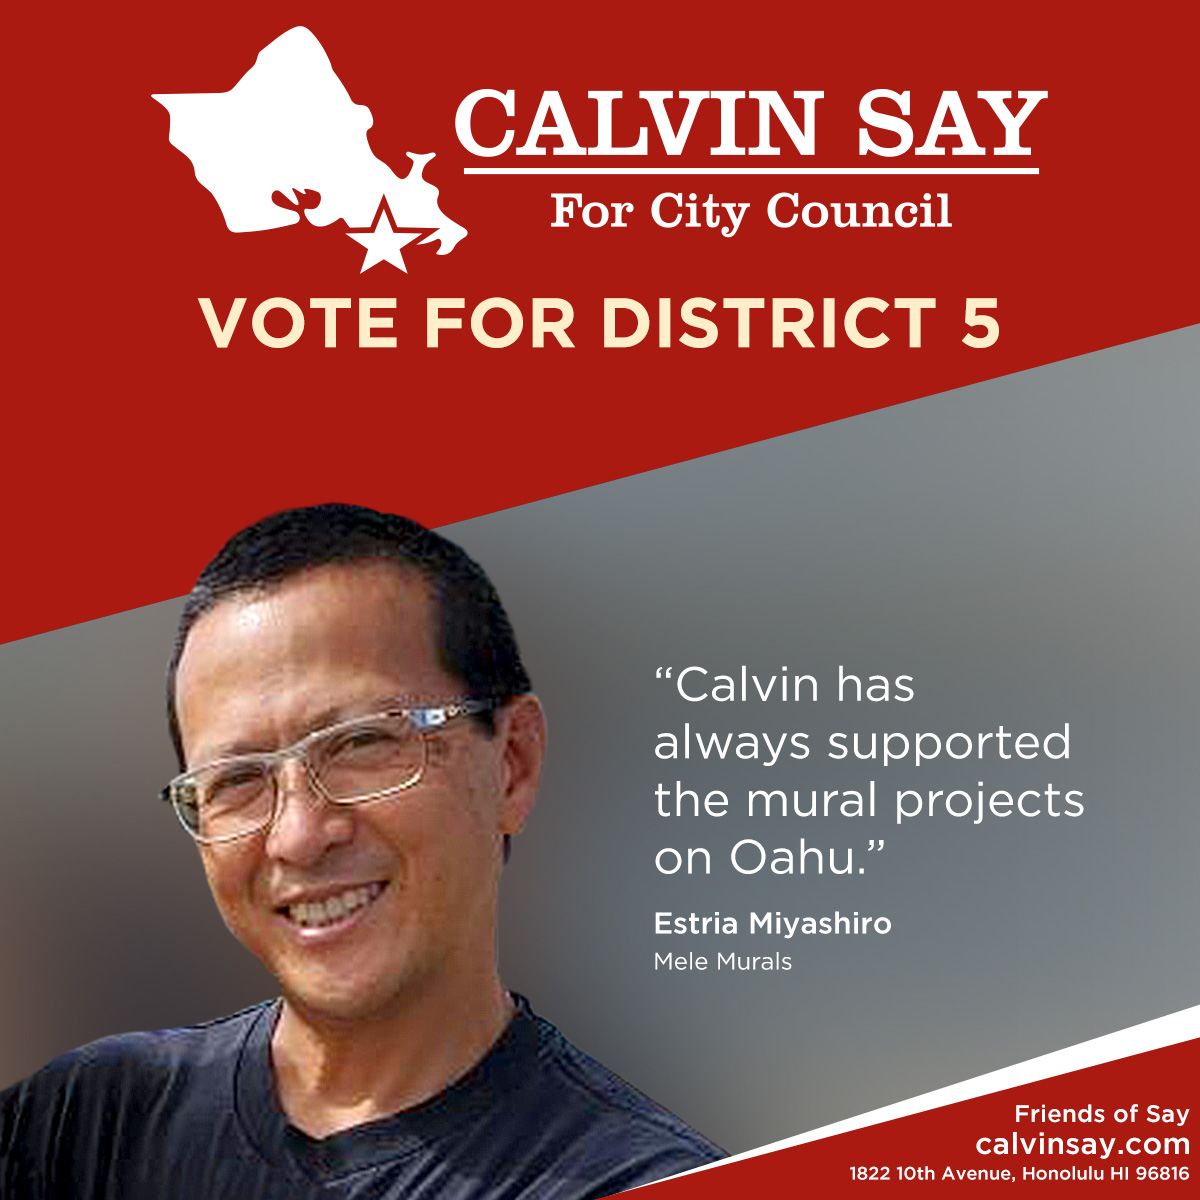 Estria Miyashiro's words in support of Speaker Emeritus Calvin K.Y. Say for Honolulu City Council District V.